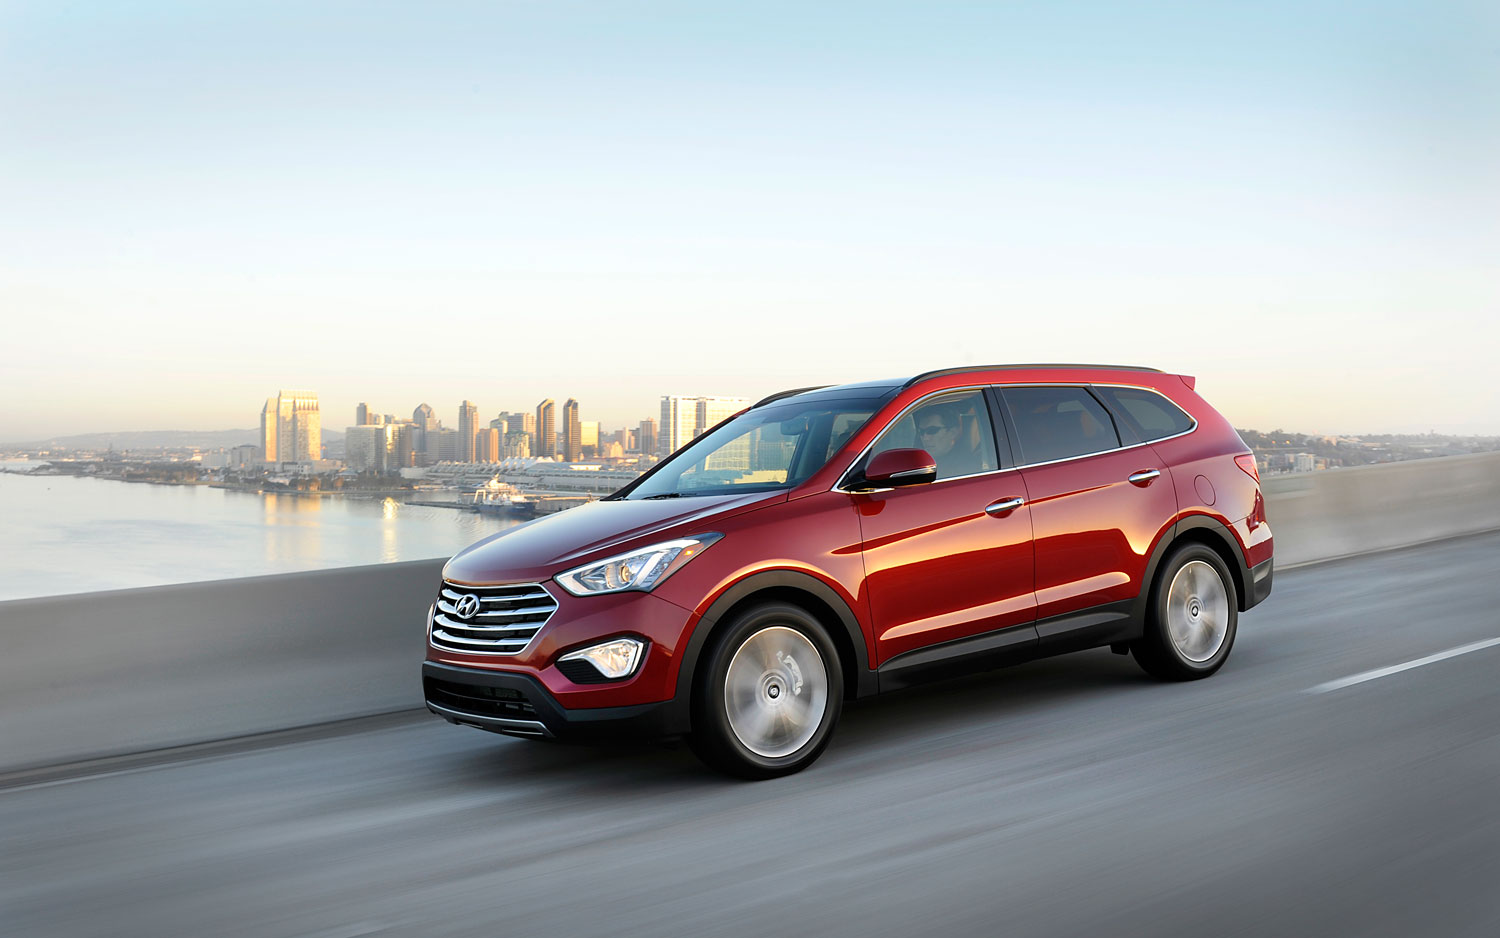 2013 Hyundai Santa Fe Front Left Side View1